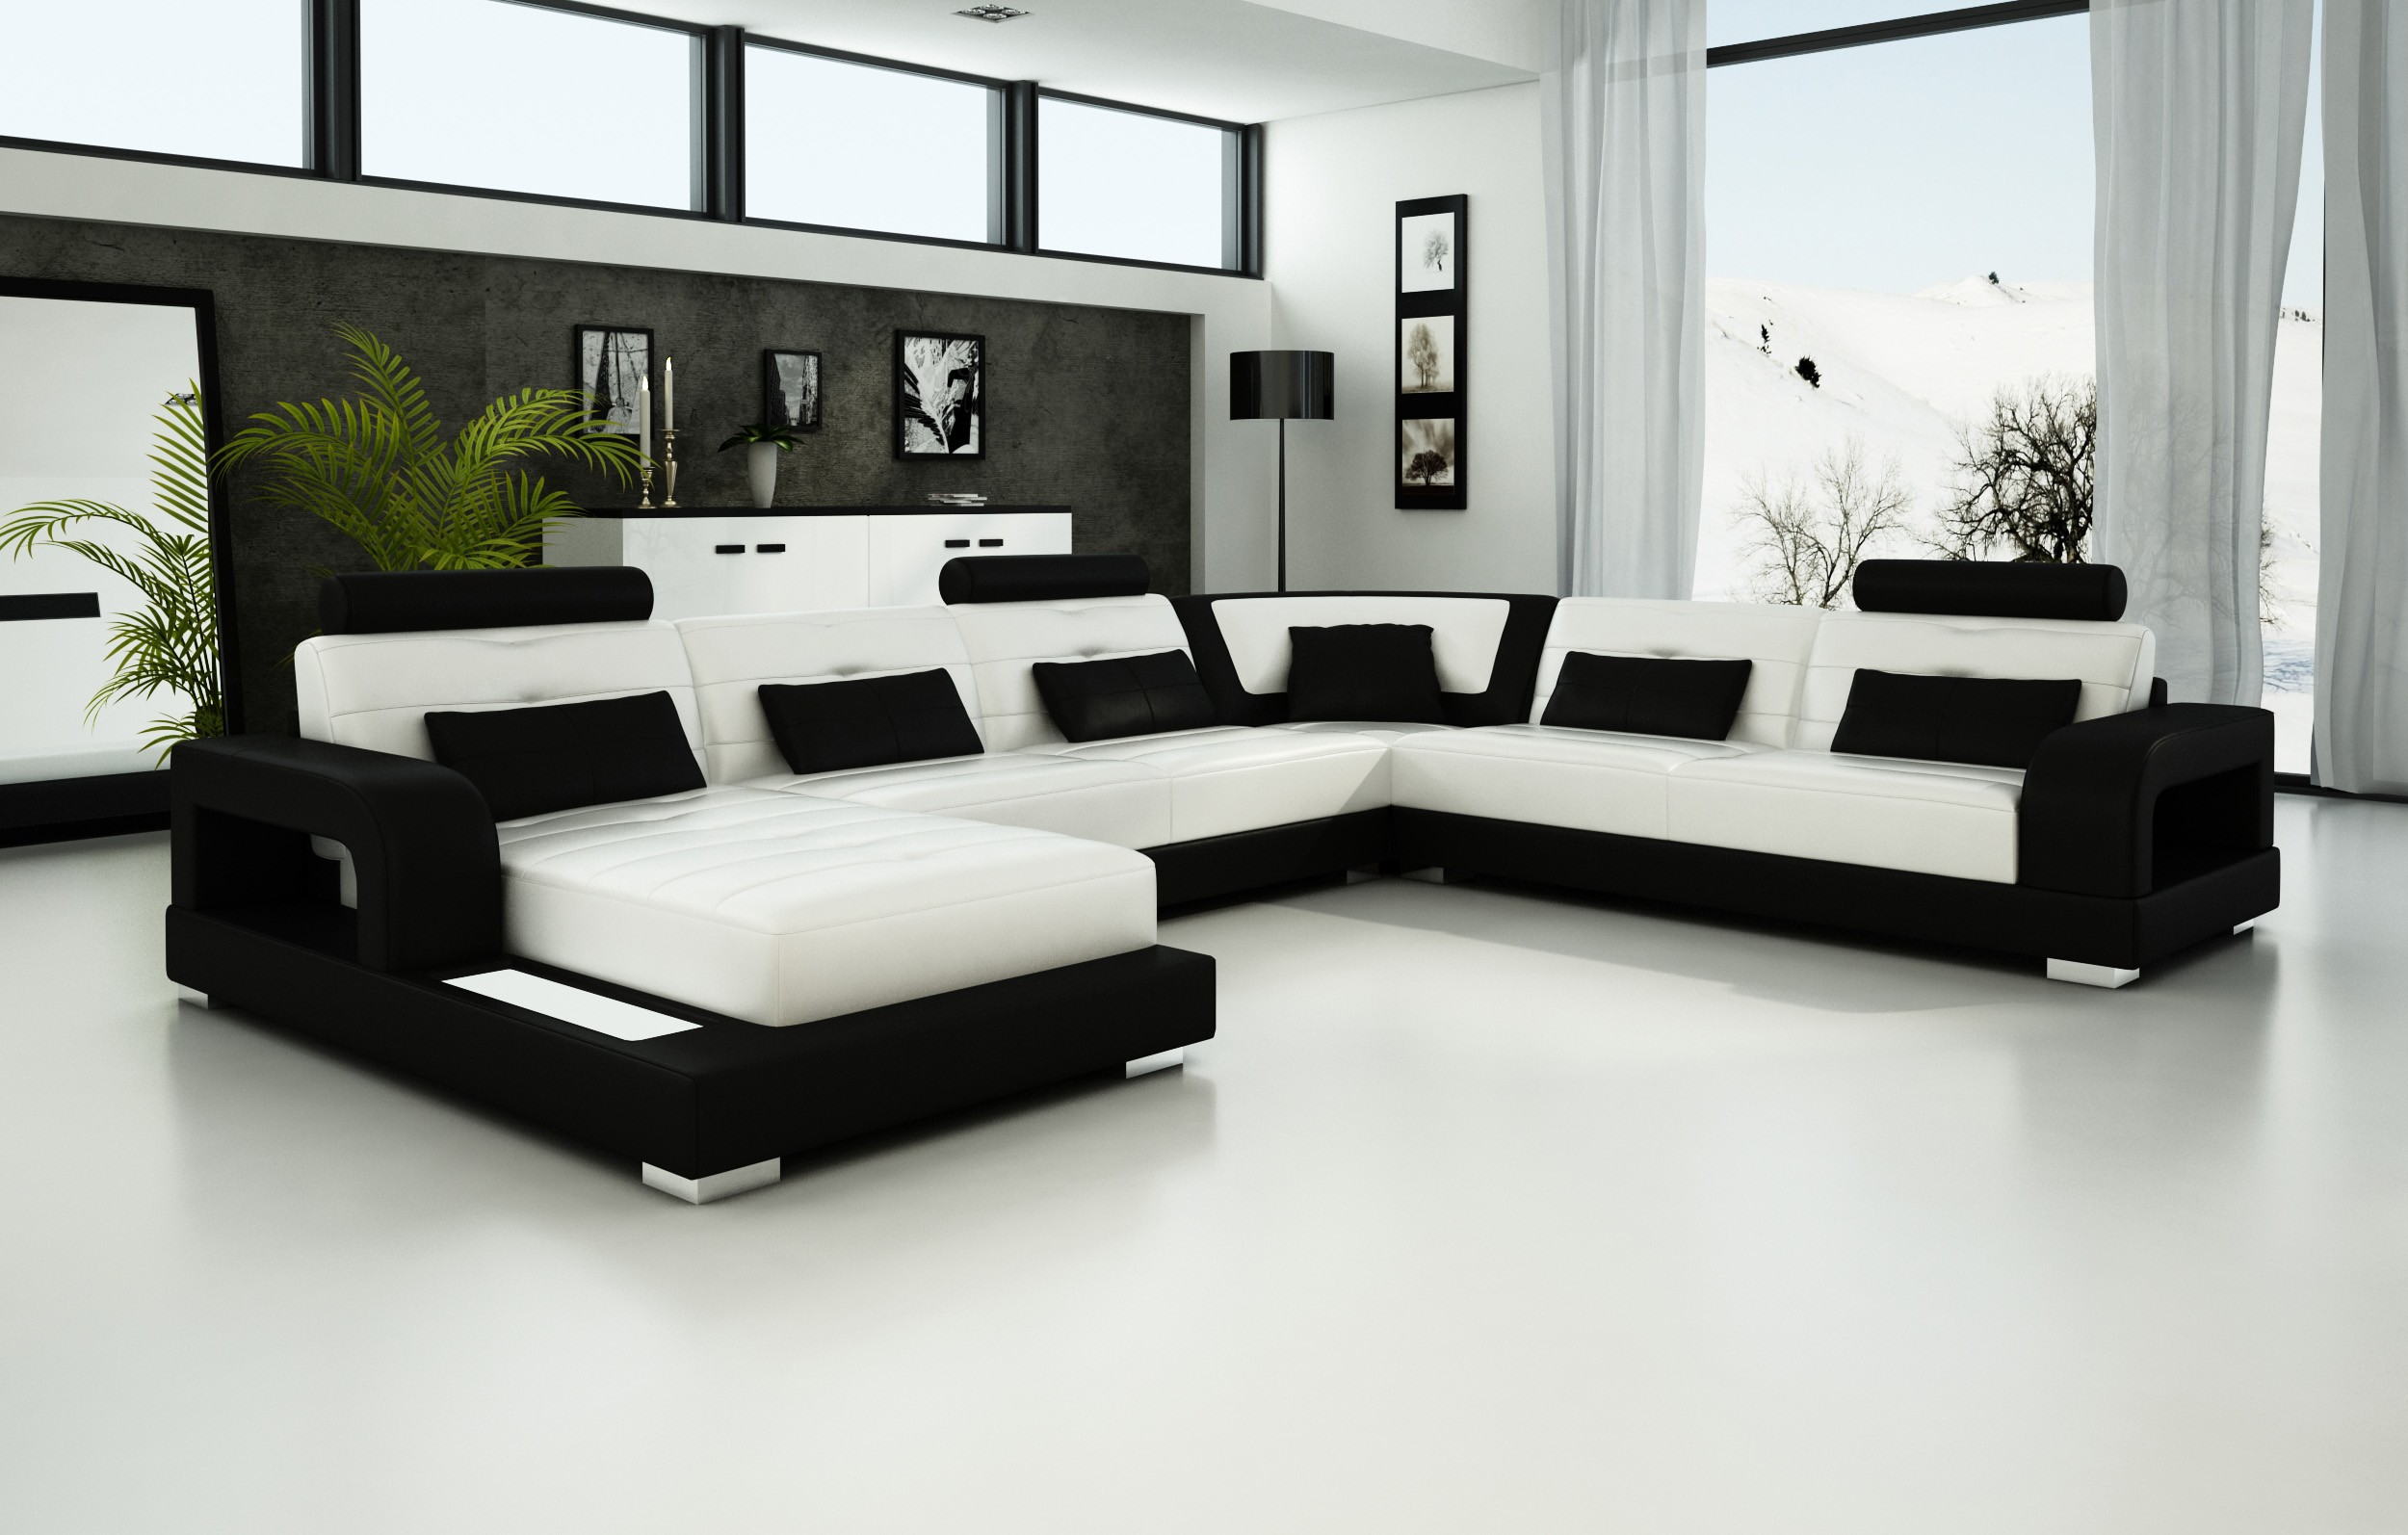 Pesaro White-Black Leather Sofa